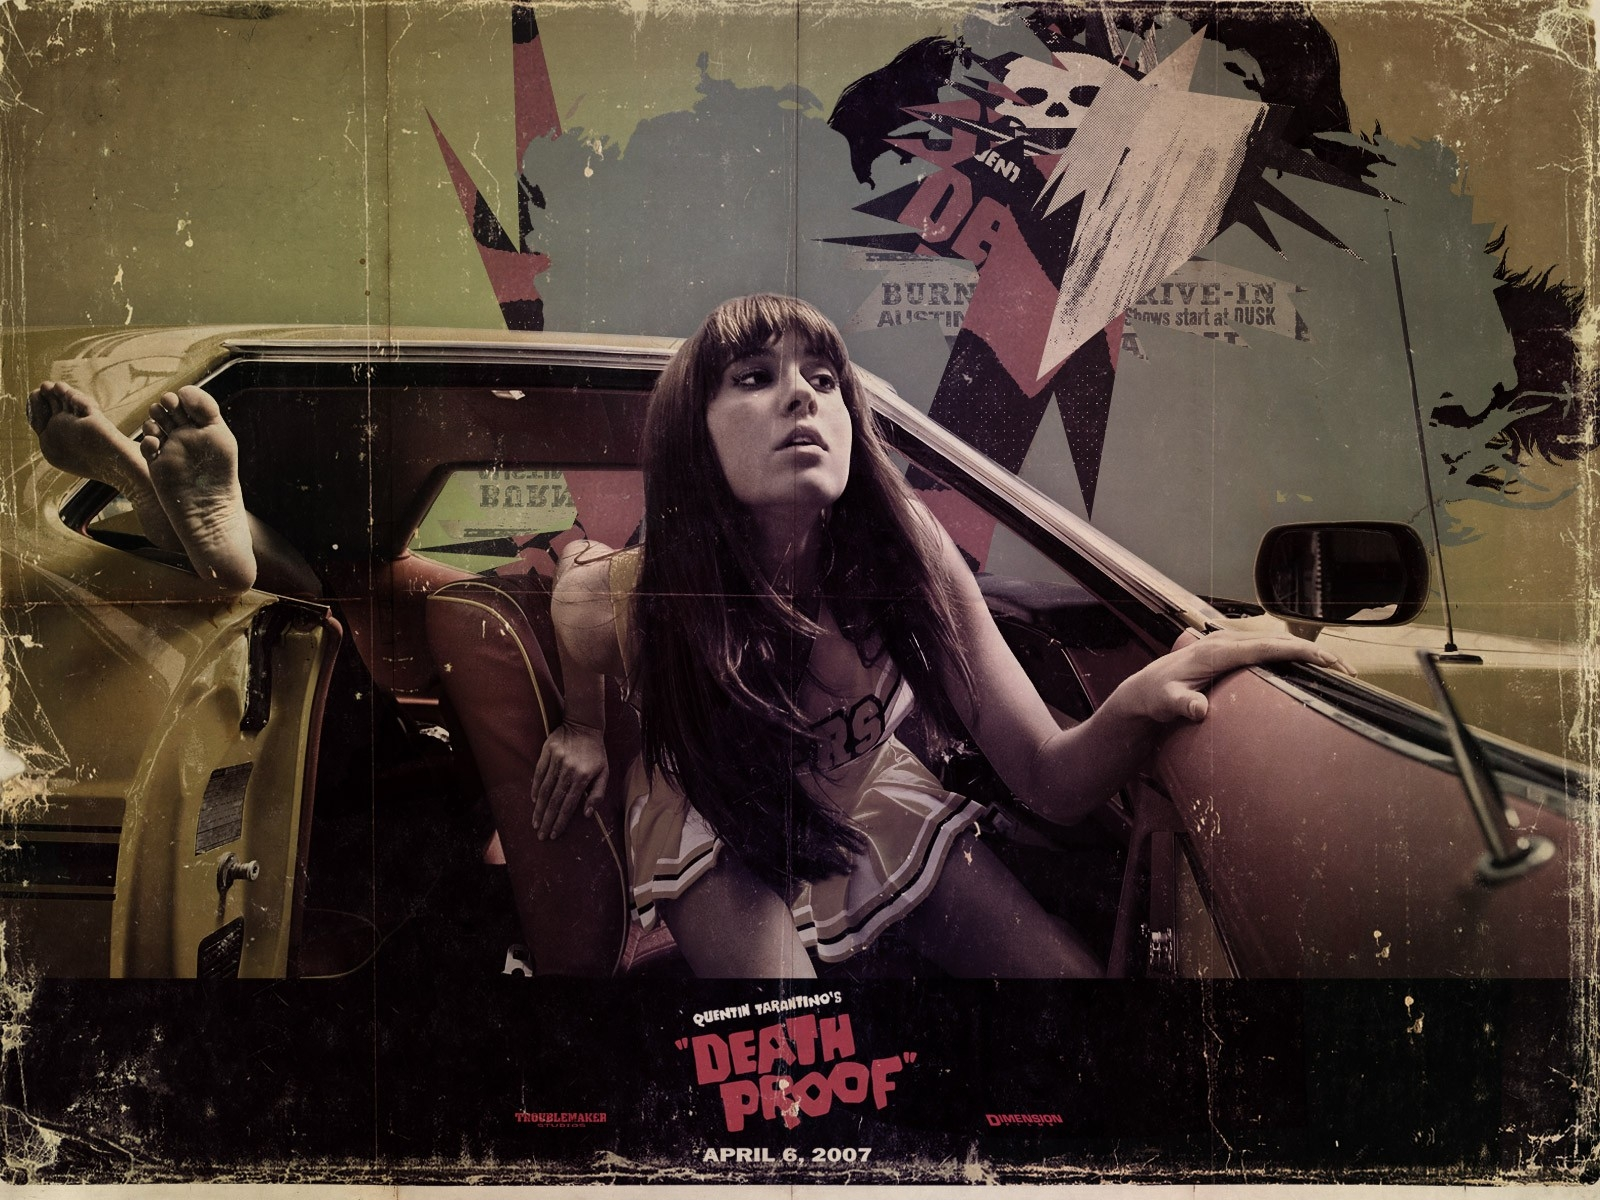 Wallpaper del film Grindhouse con Mary Elizabeth Winstead